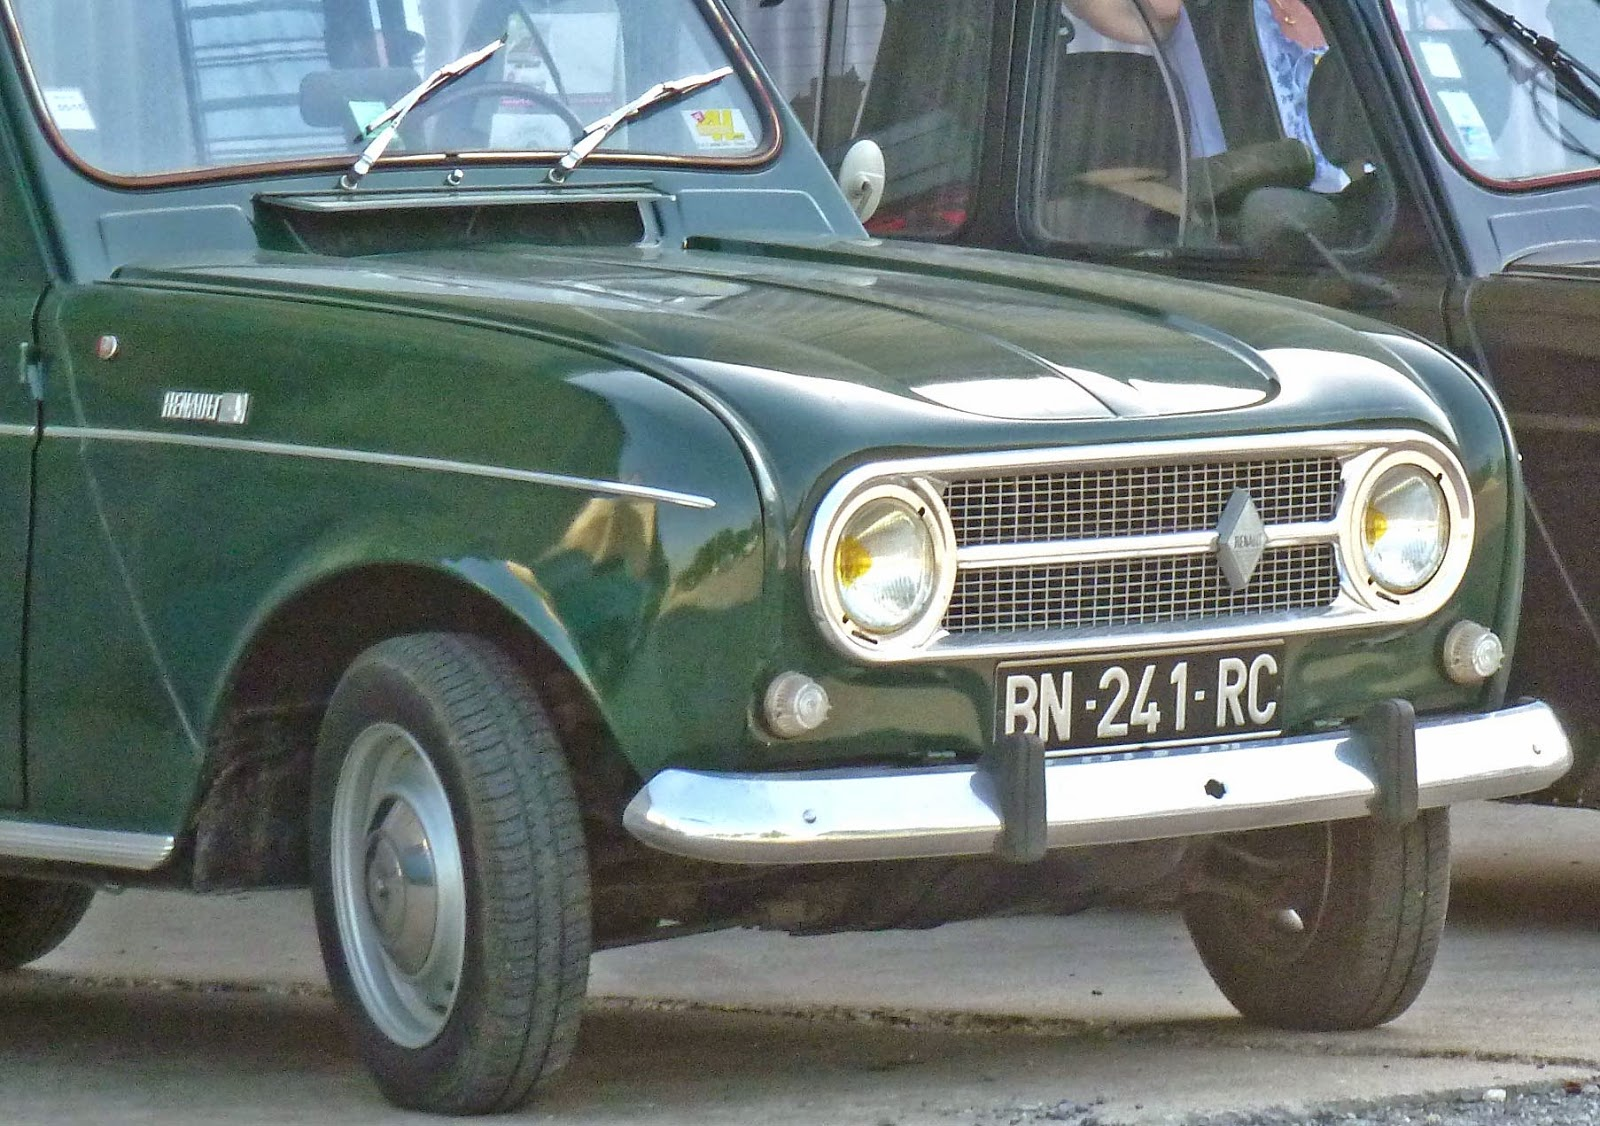 hight resolution of i still sometimes think i d like to own an old renault 4 but i feel like i d need to know how or have the inclination to learn how to work on old